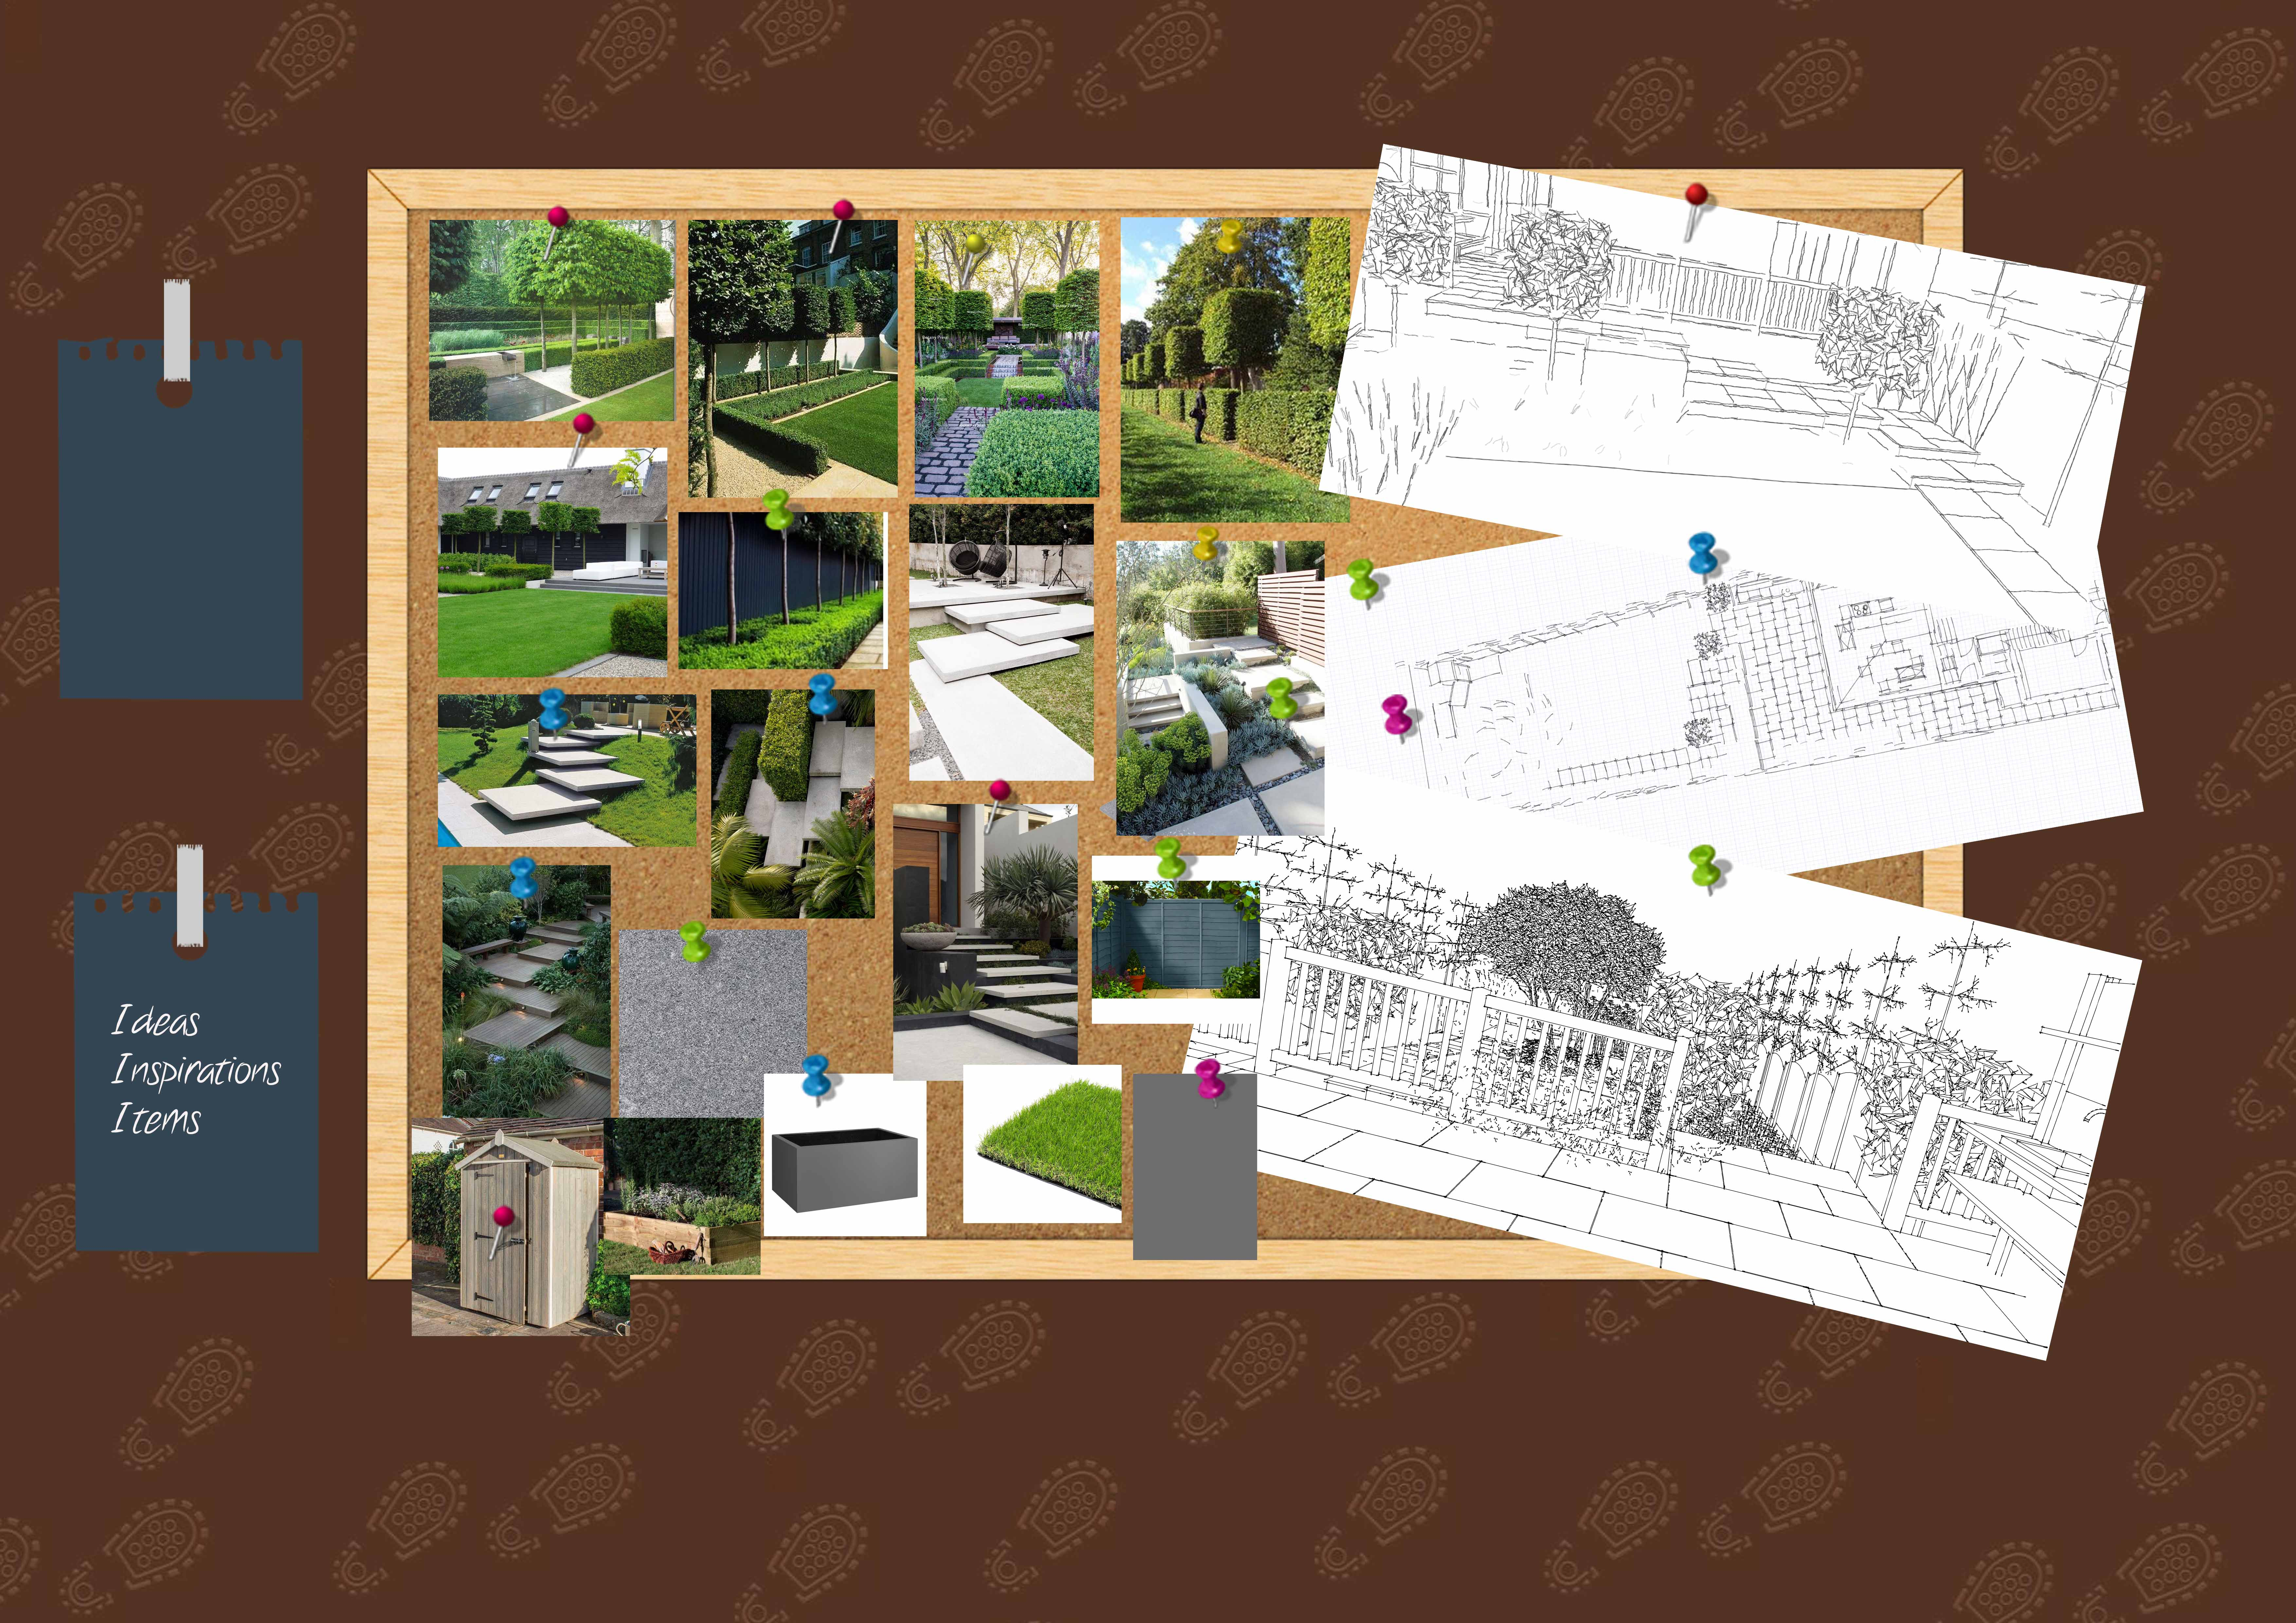 Earth Designs always creates mood boards; this is for modern garden designs